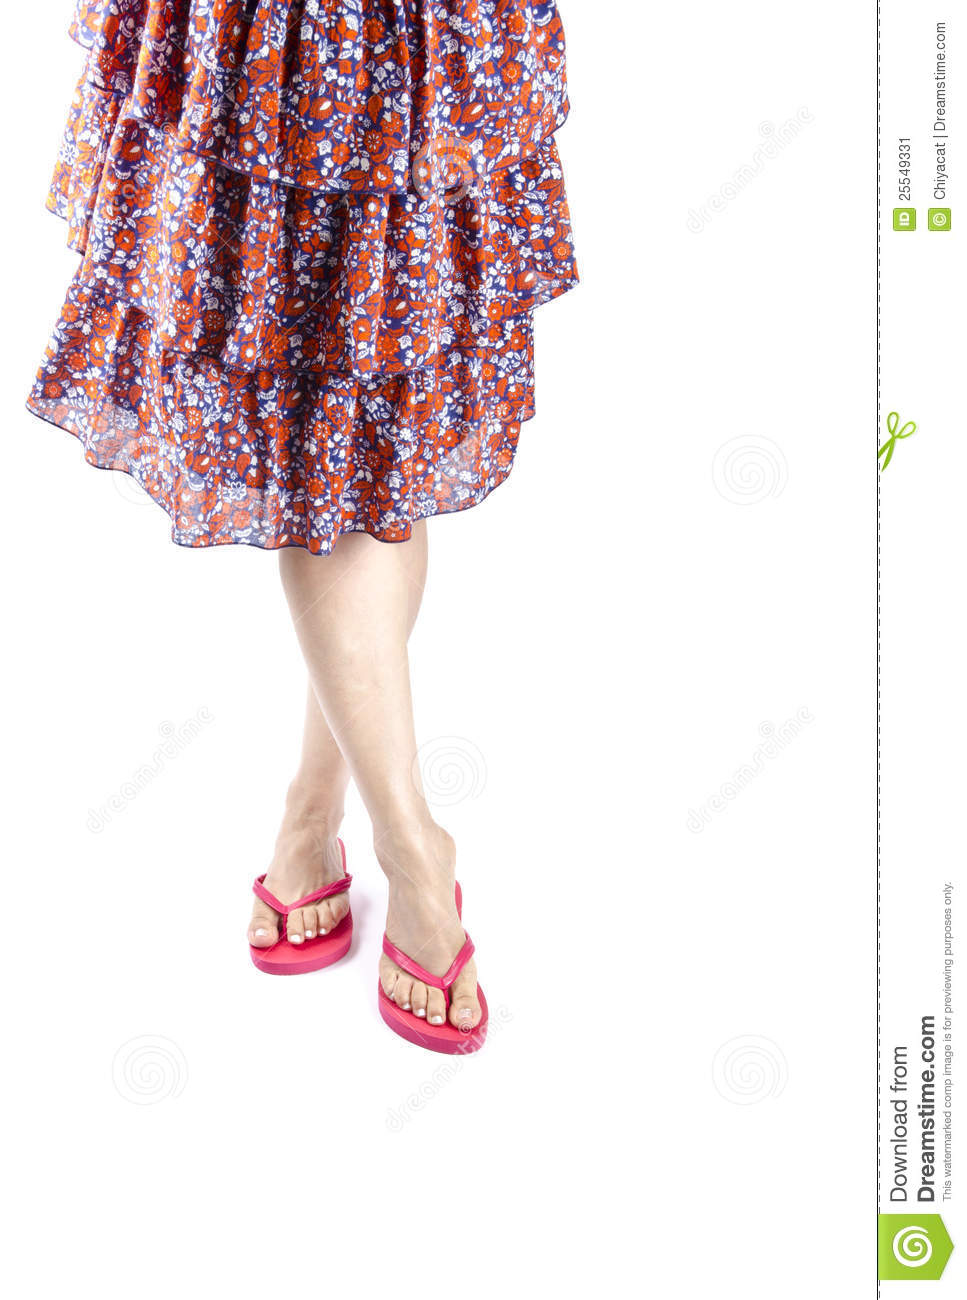 8c70629dd85b Woman Wearing Skirt And Red Flip Flops Stock Image - Image of female ...